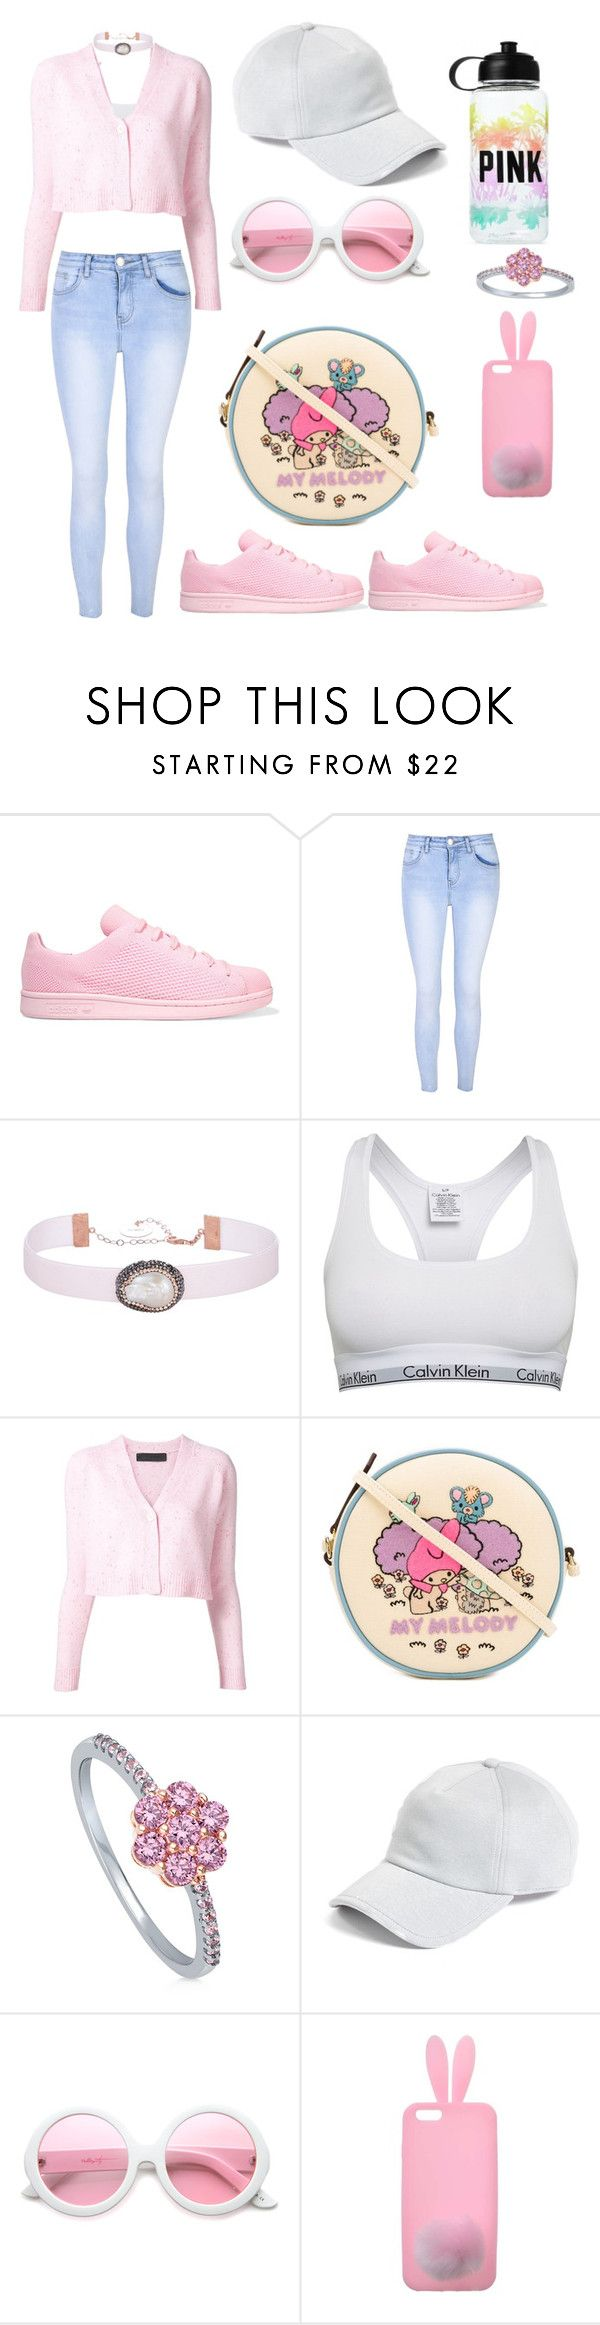 """Untitled #847"" by dbellz ❤ liked on Polyvore featuring adidas Originals, Glamorous, Soru Jewellery, Calvin Klein, The Elder Statesman, Olympia Le-Tan, BERRICLE, rag & bone, ZeroUV and Victoria's Secret"